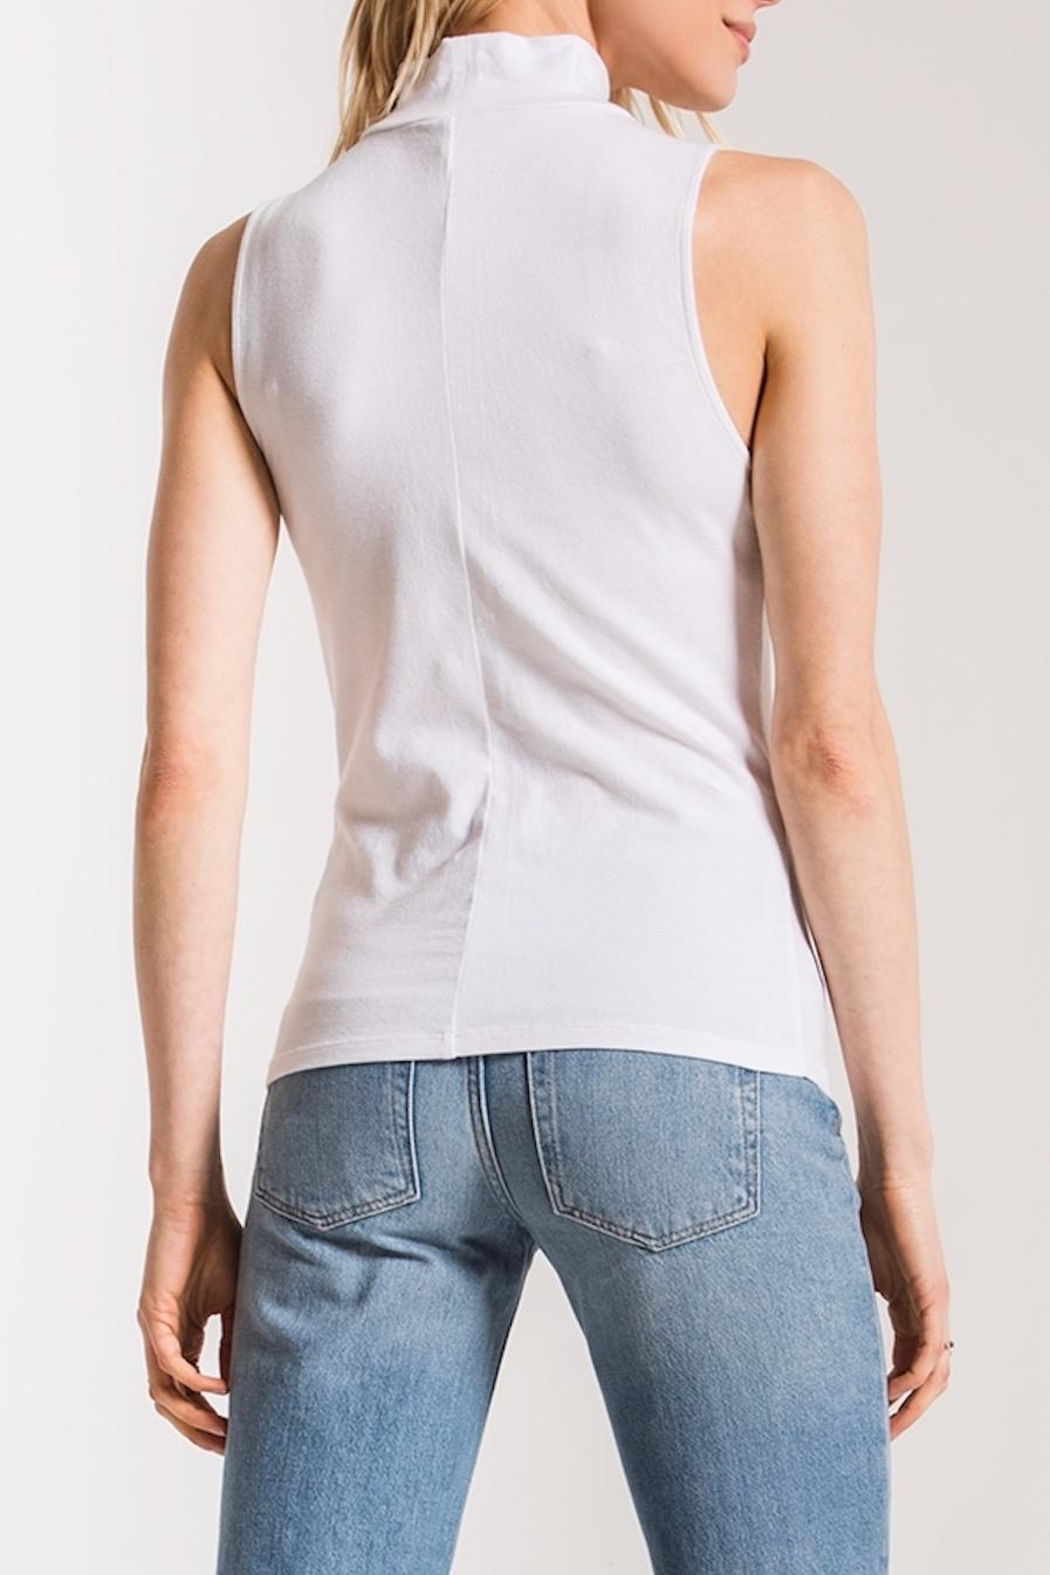 z supply Mock Neck Tank - Front Full Image